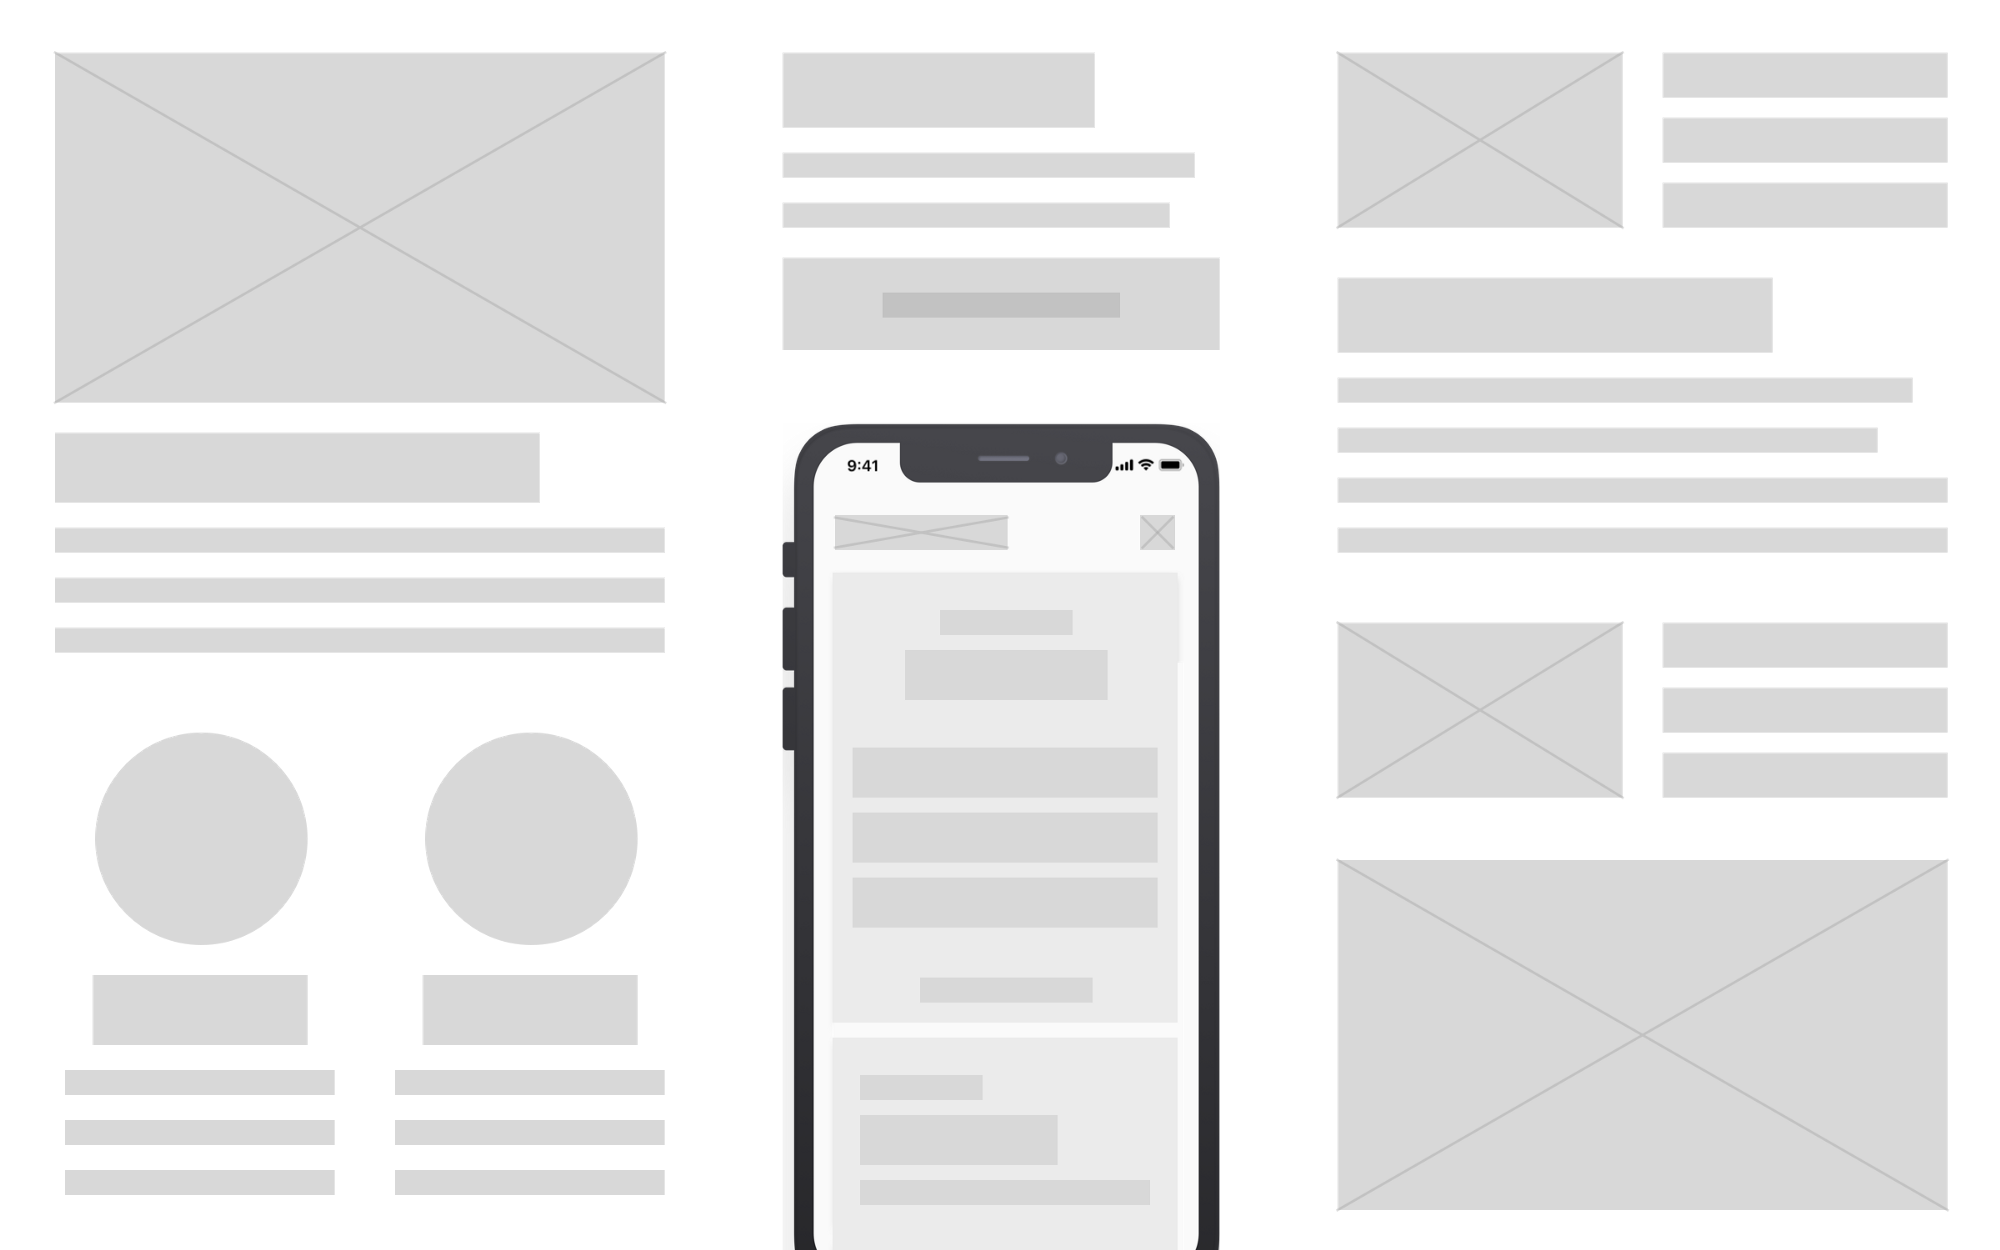 Wireframe components and a mobile